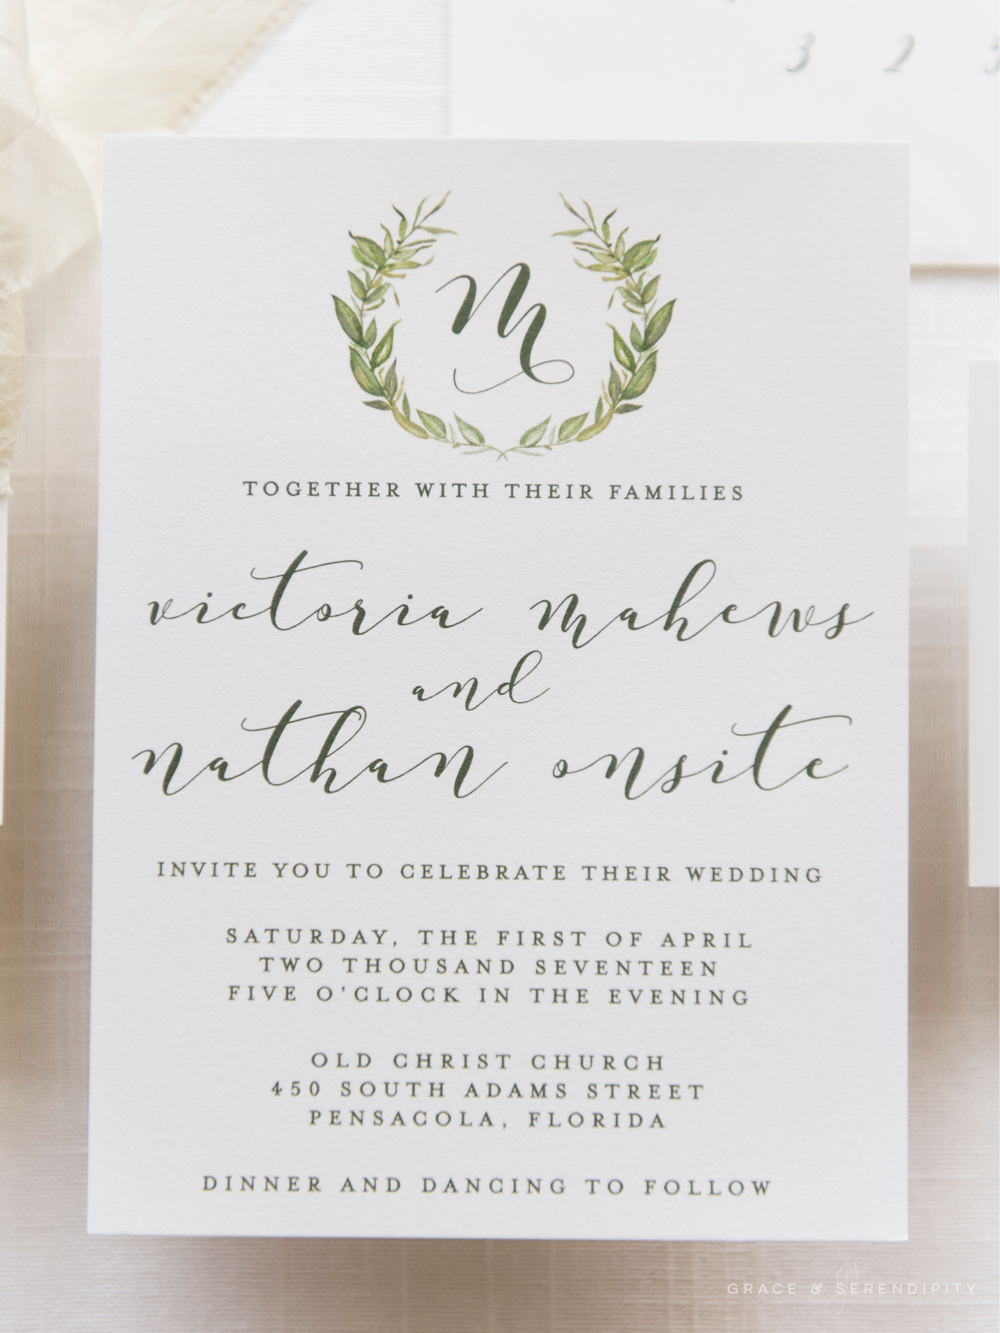 Beloved Greenery Wreath Suite - Wedding Invitation Design by Grace and Serendipity, inspired by Pantones 2017 Color of the Year